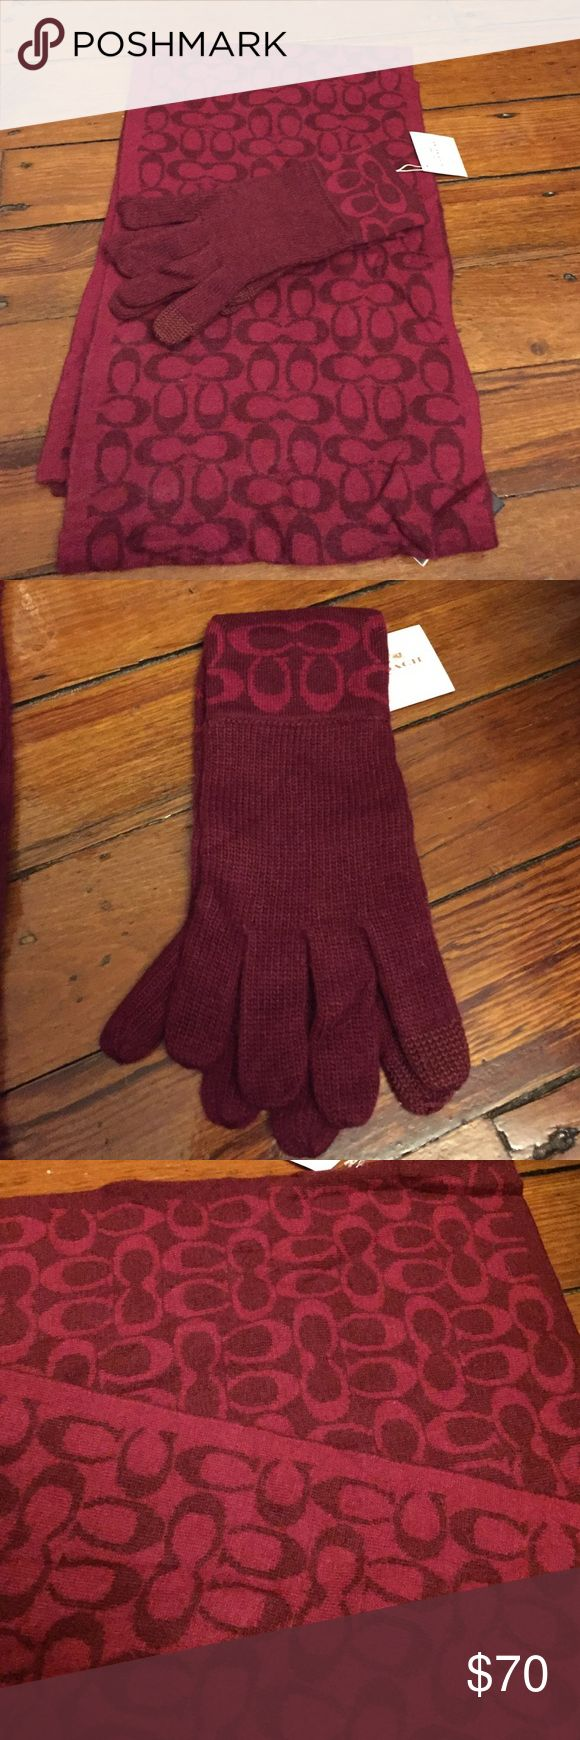 Coach scarf & gloves set! Two toned burgundy NWT!! Gorgeous NWT Coach scarf and gloves set! Selling both together for great price! The gloves have touch screen fingers. Scarf is two toned with lighter burgundy on one side and darker burgundy on the other! Coach Accessories Scarves & Wraps